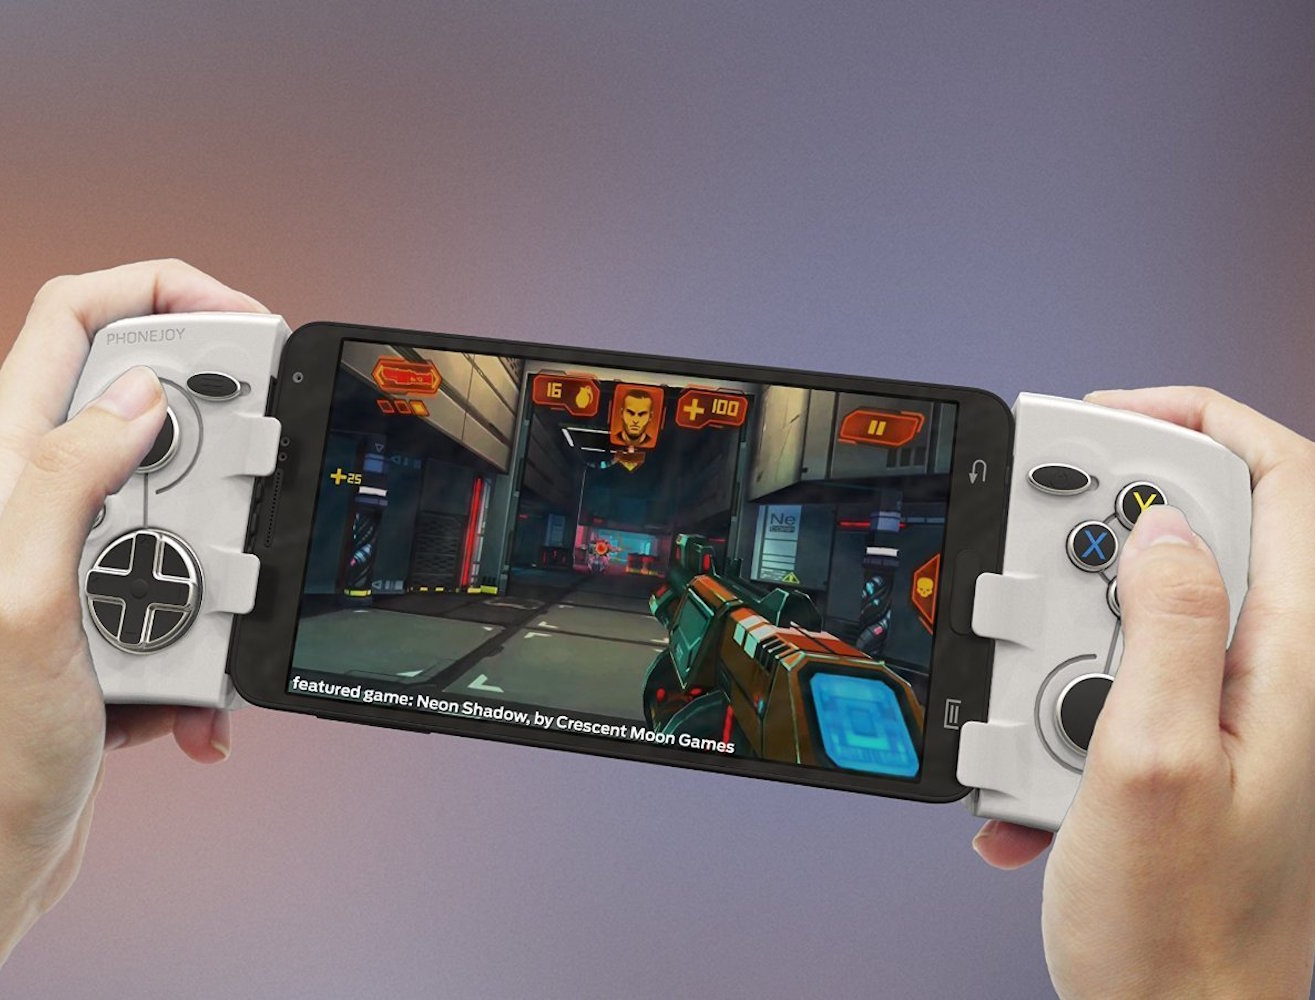 Phonejoy Bluetooth Controller for Android Phones